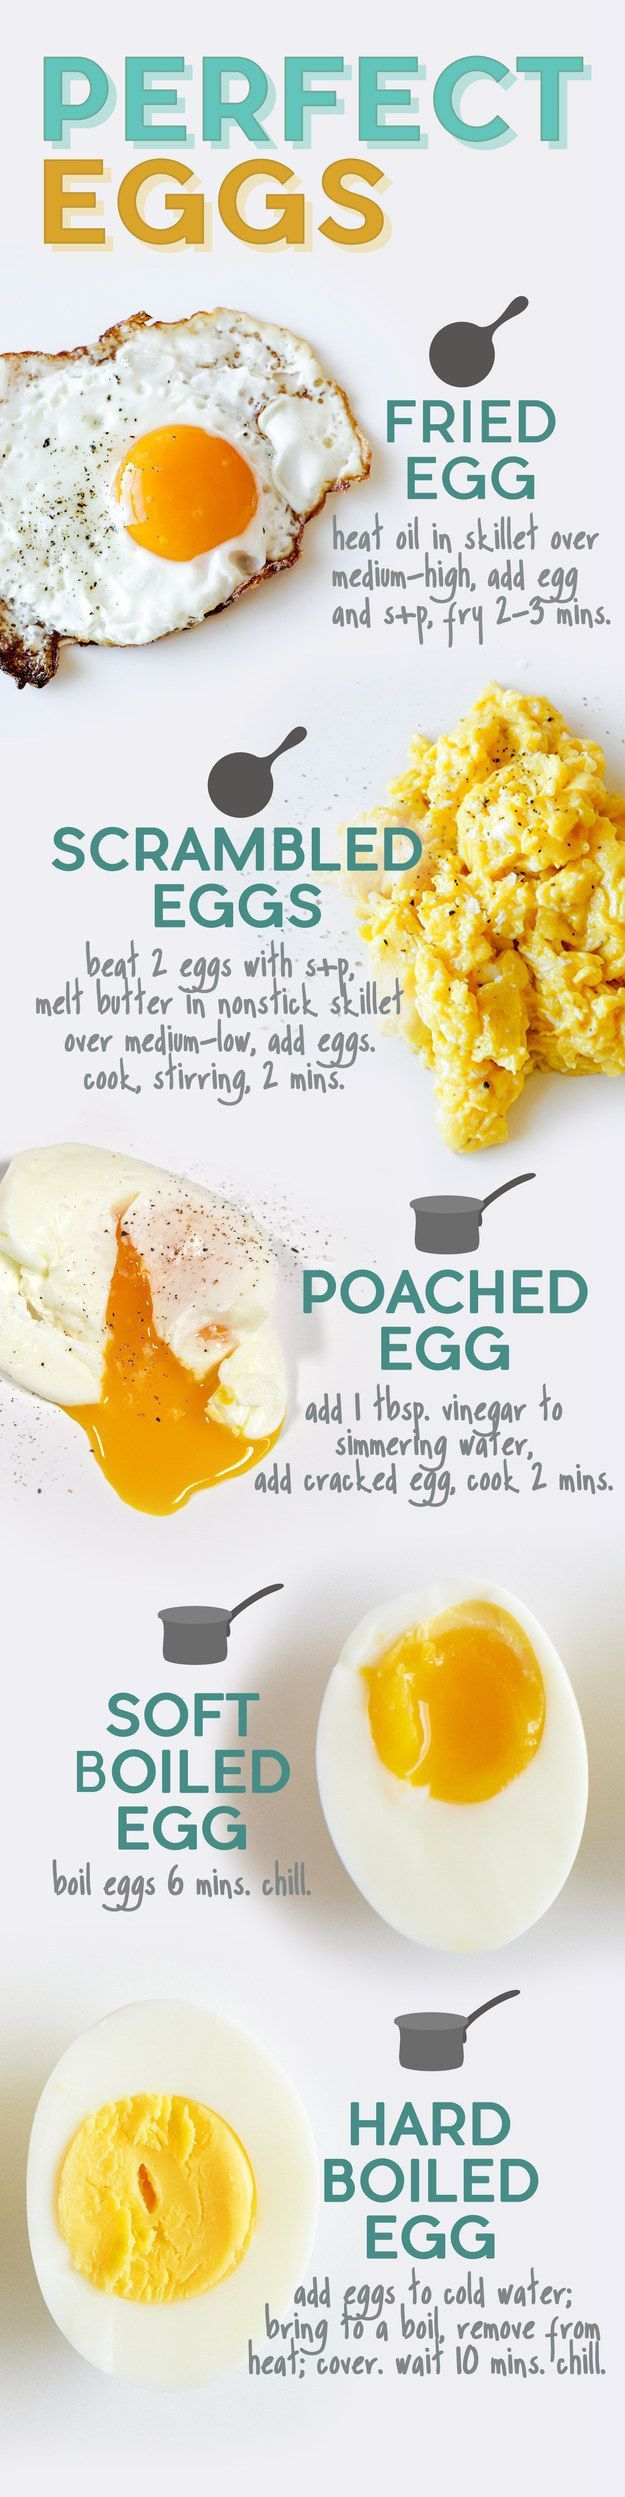 Eggs are a great, cheap source of protein. Learn how to make them perfectly, any way you want. | 7 Easy Ways To Eat A Little Healthier